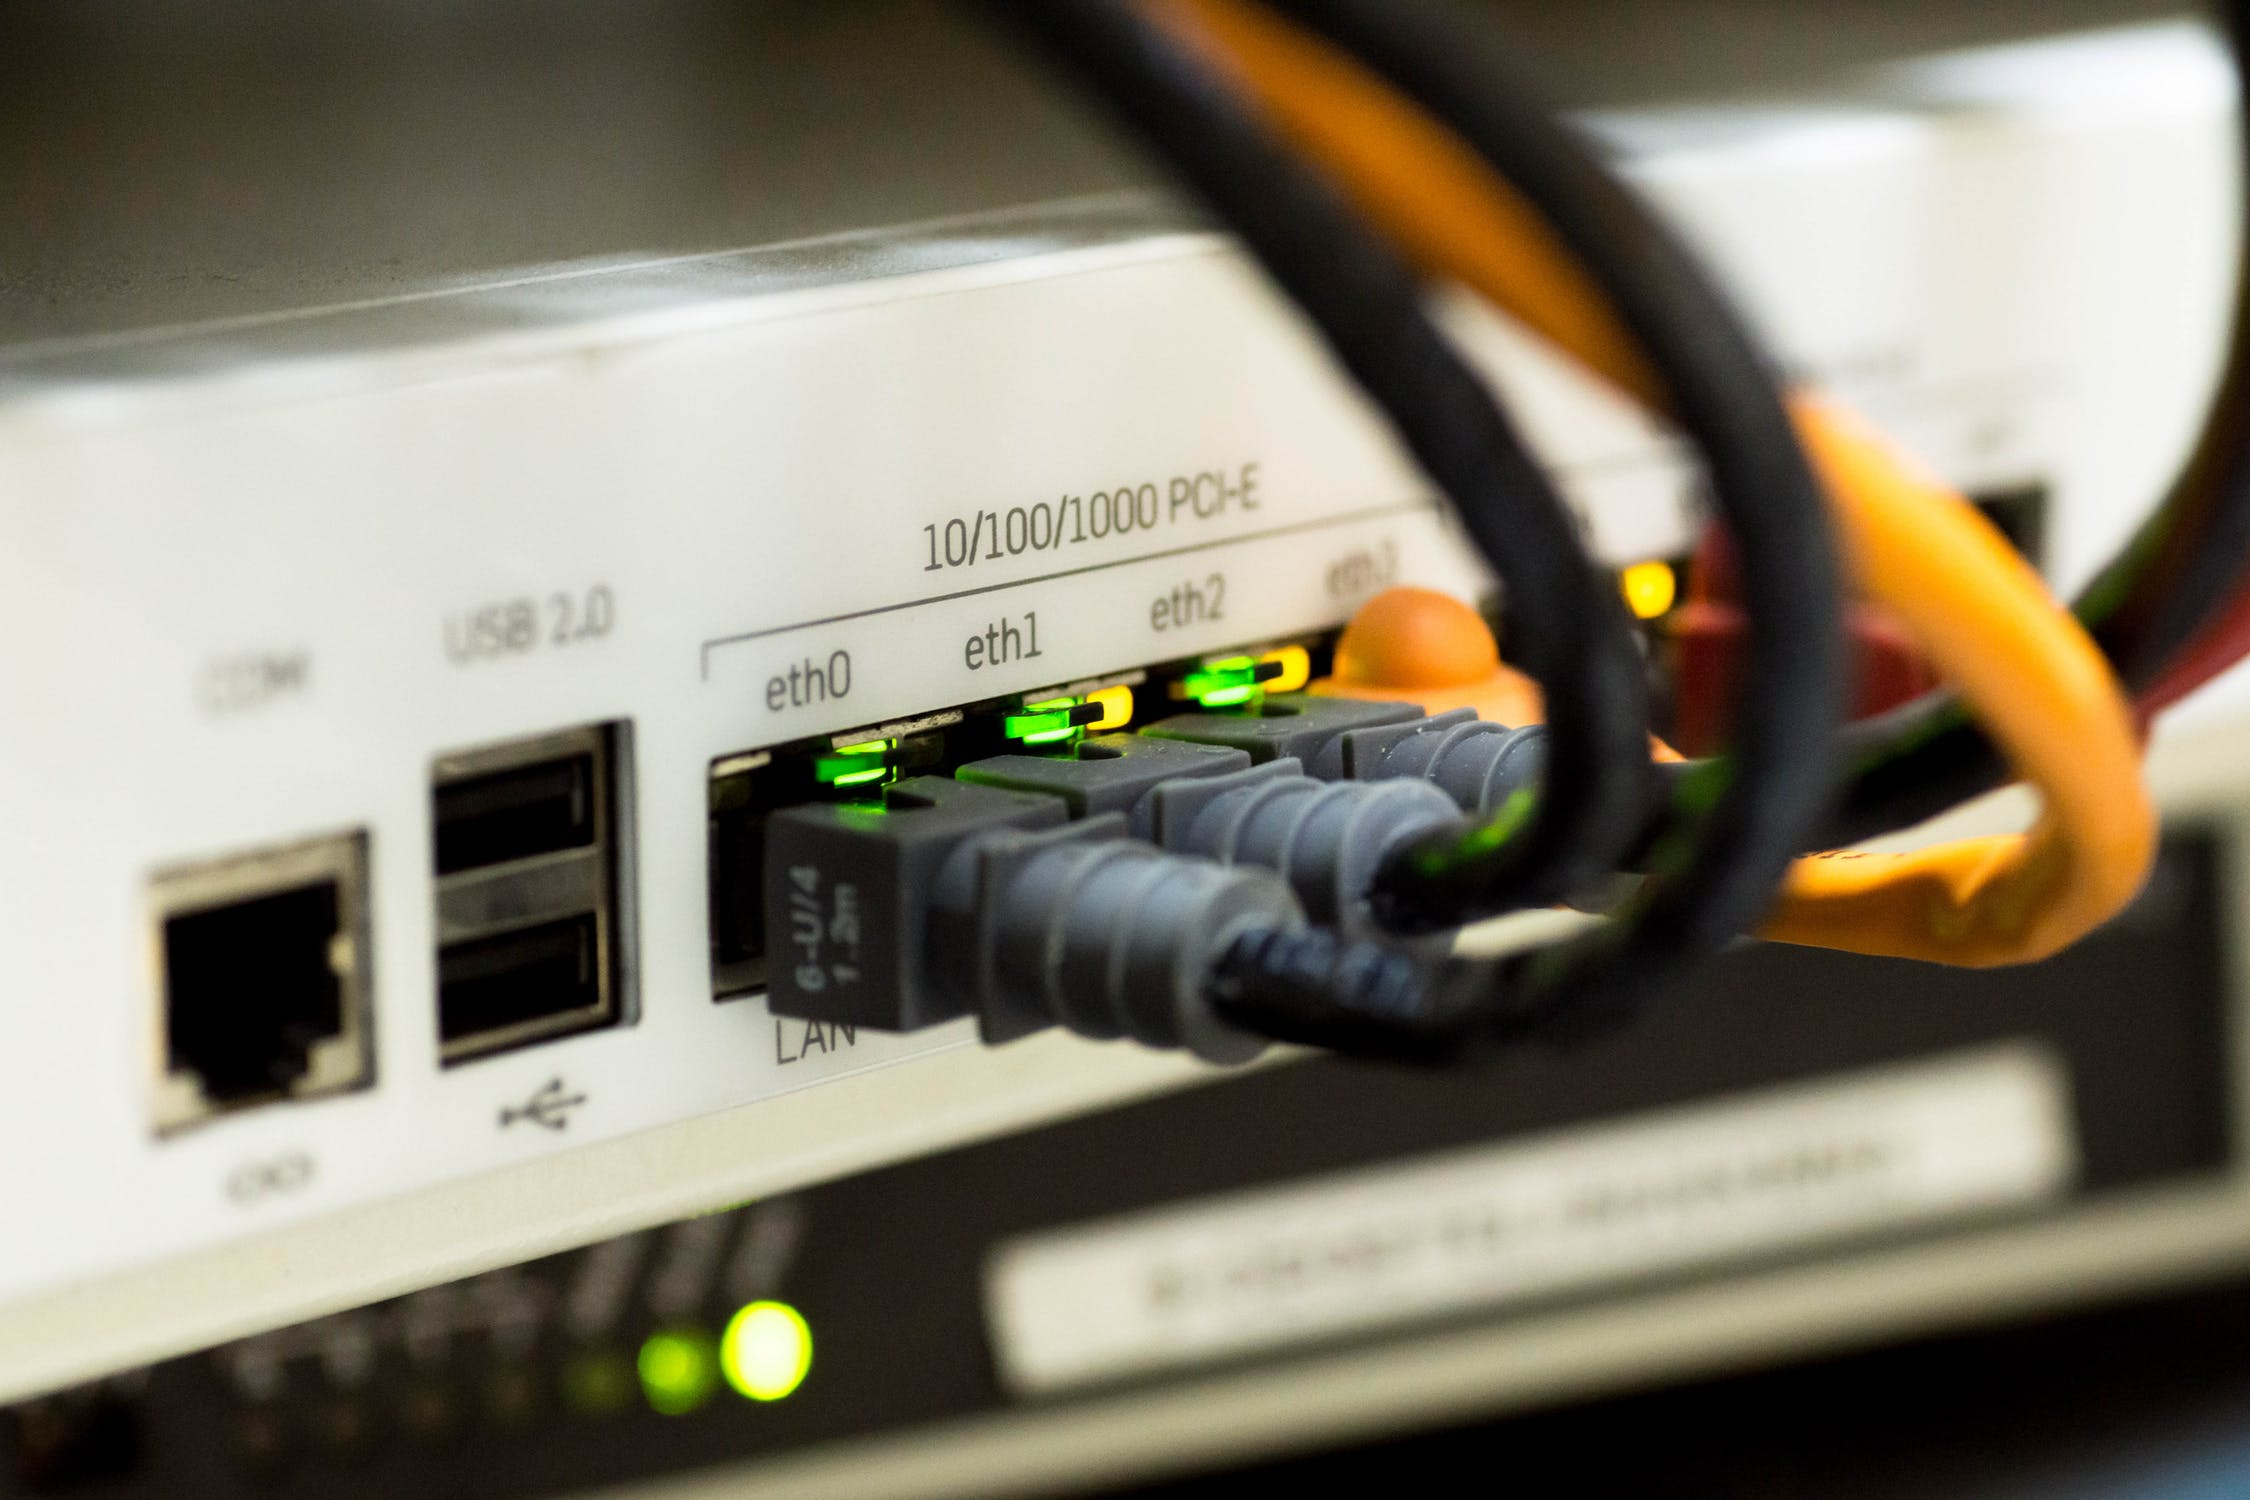 Network cables plugged in for broadband internet